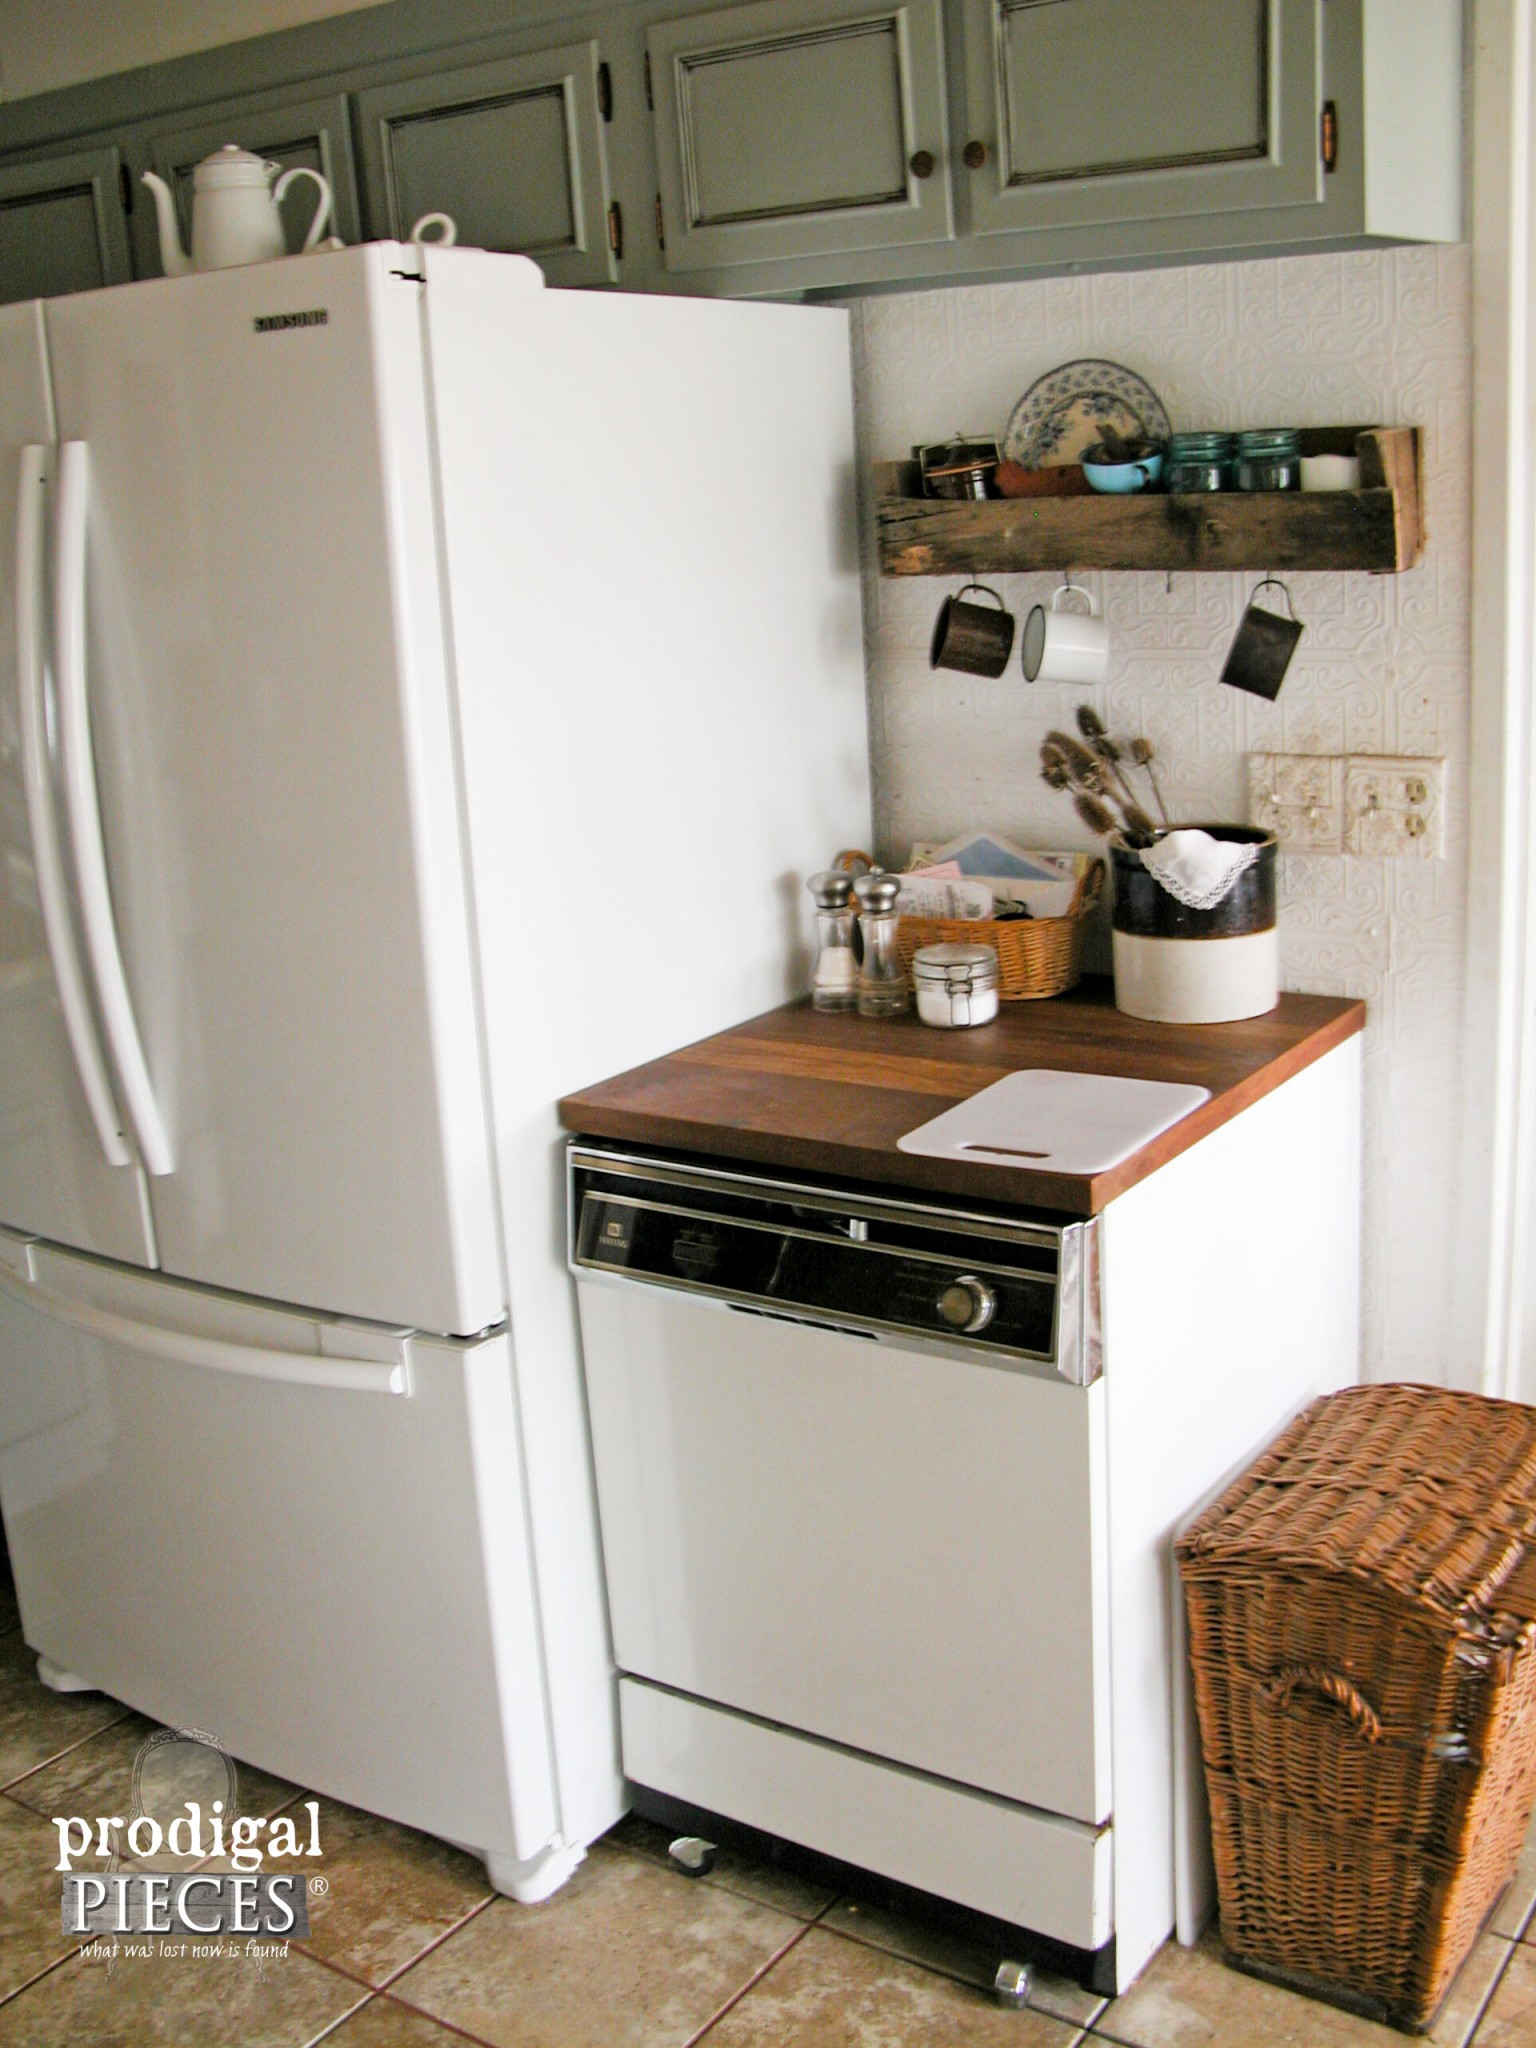 Old Portable Dishwasher in Kitchen Remodel | Prodigal Pieces | www.prodigalpieces.com